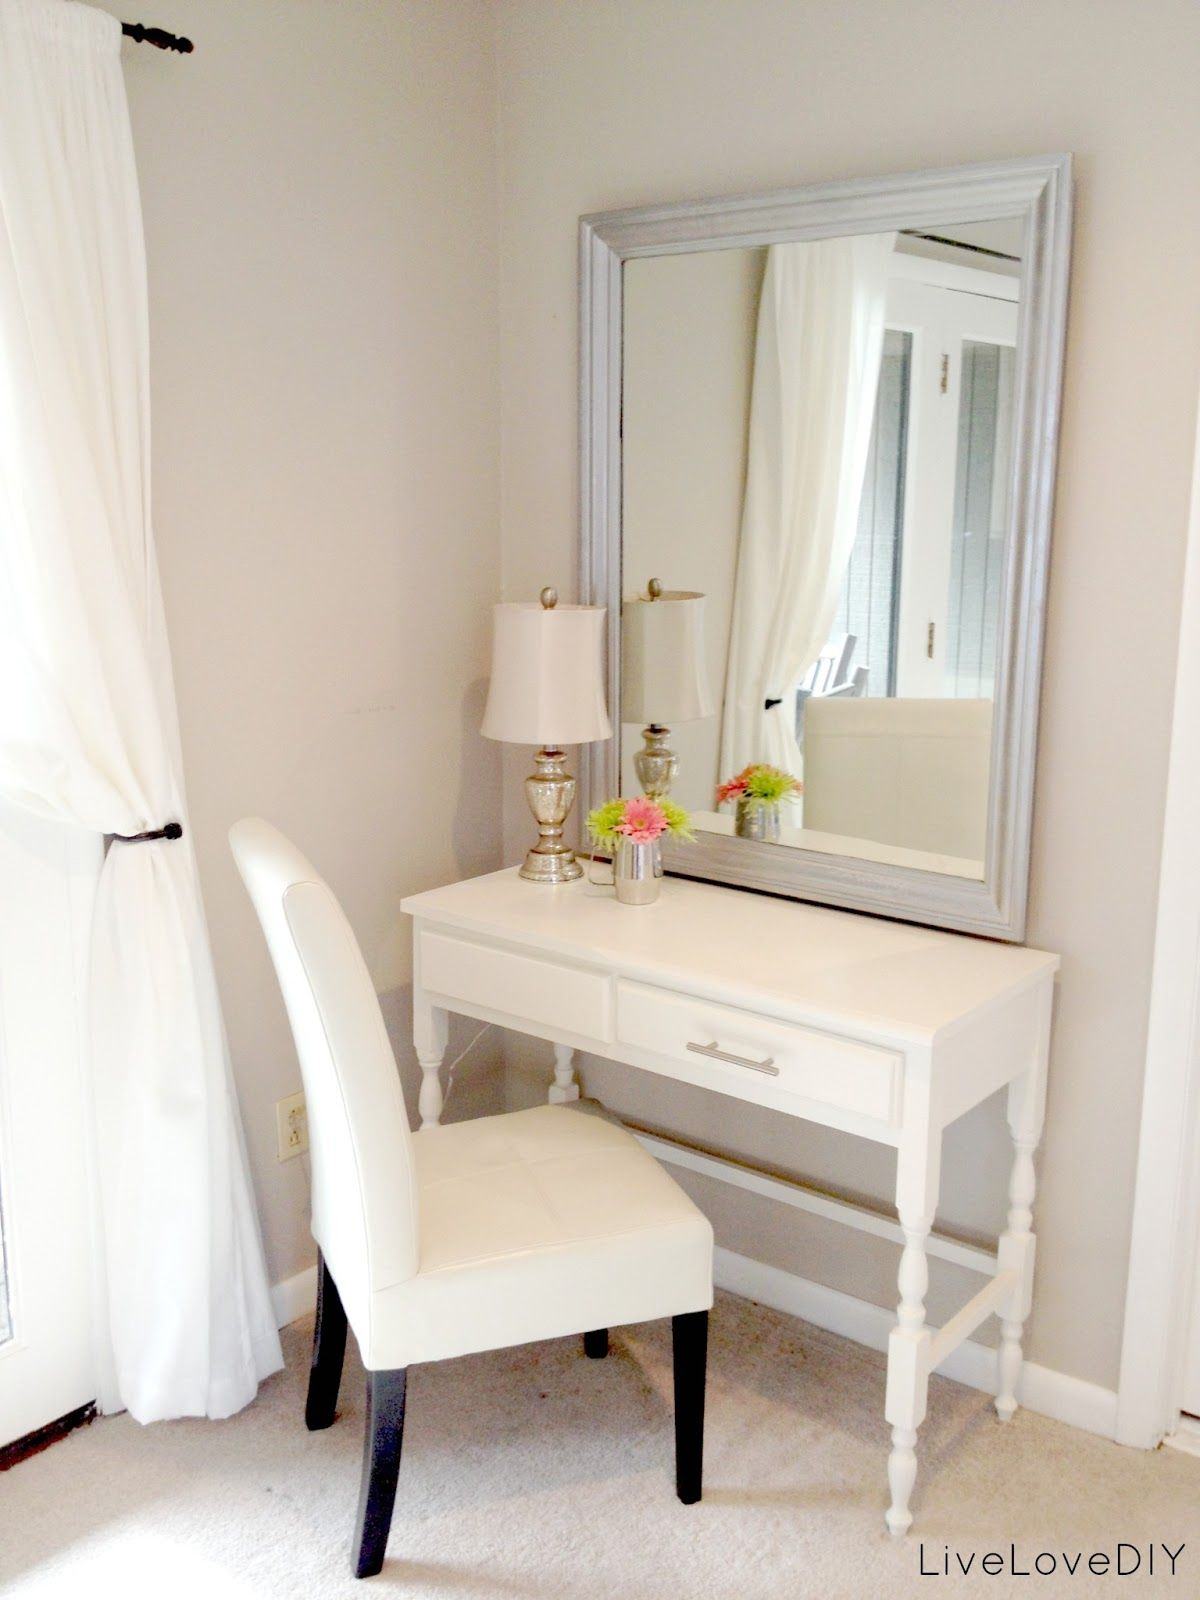 Thrift Store Desk Turned Bedroom Vanity Table. (Seen Here.) LiveLoveDIY: My